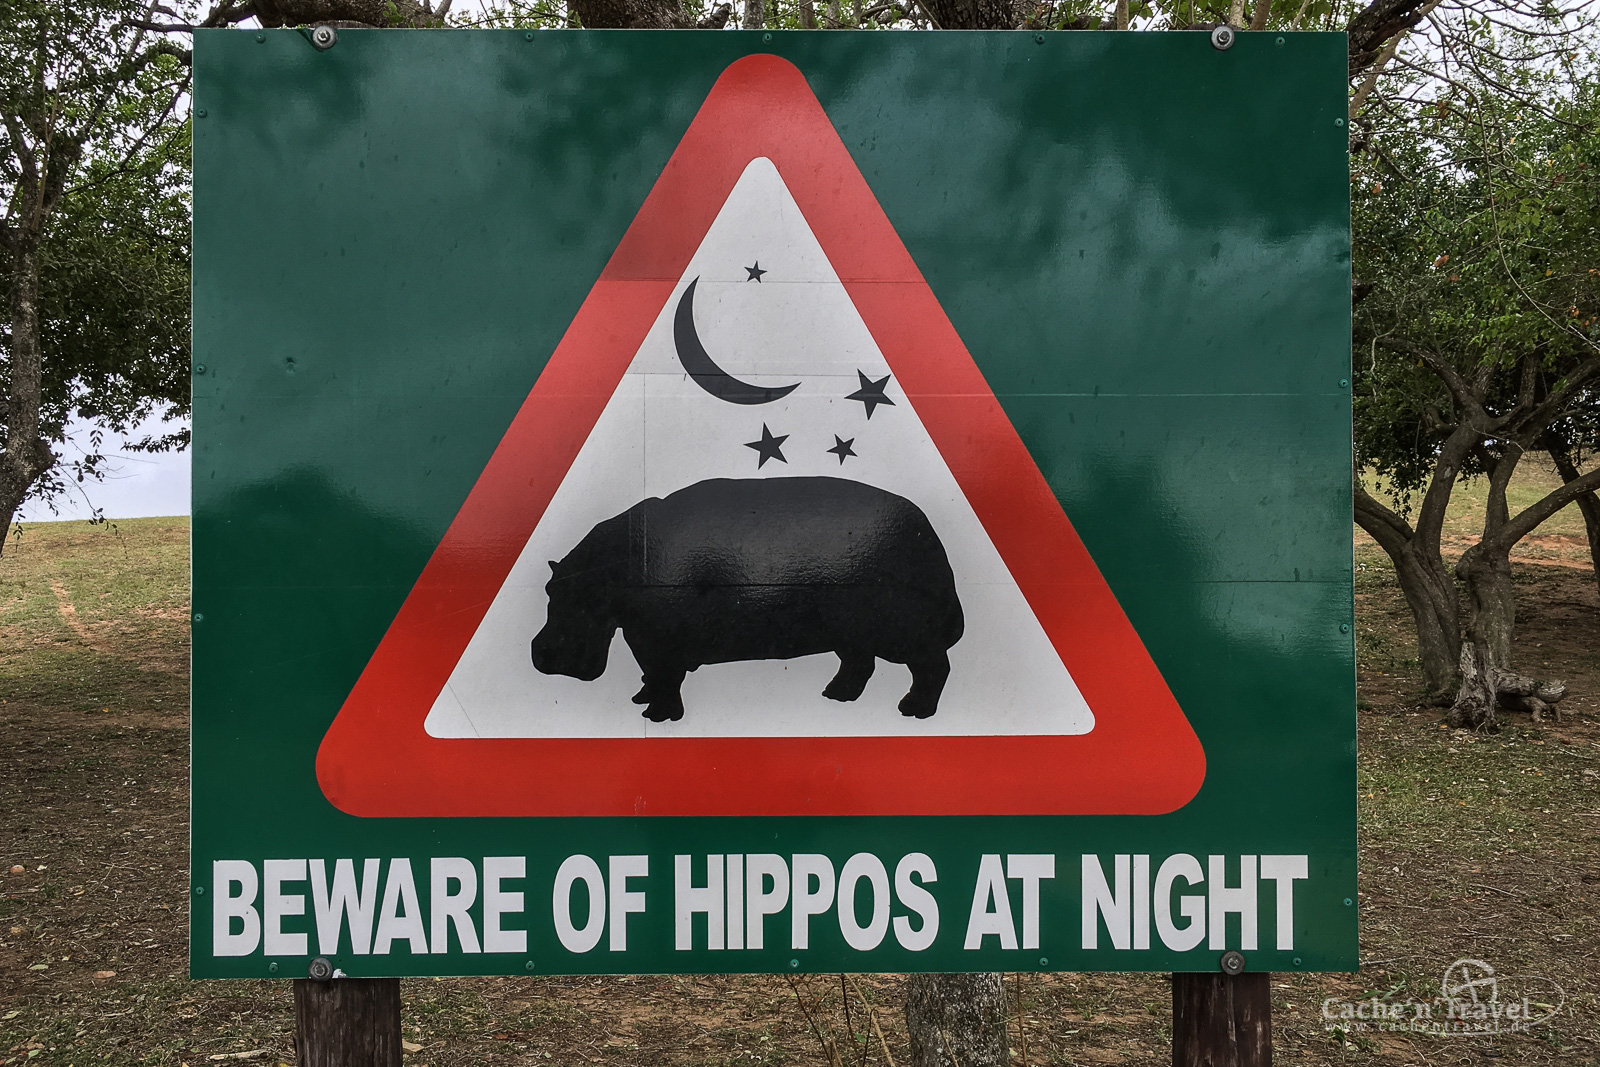 001-Beware of hippos at night